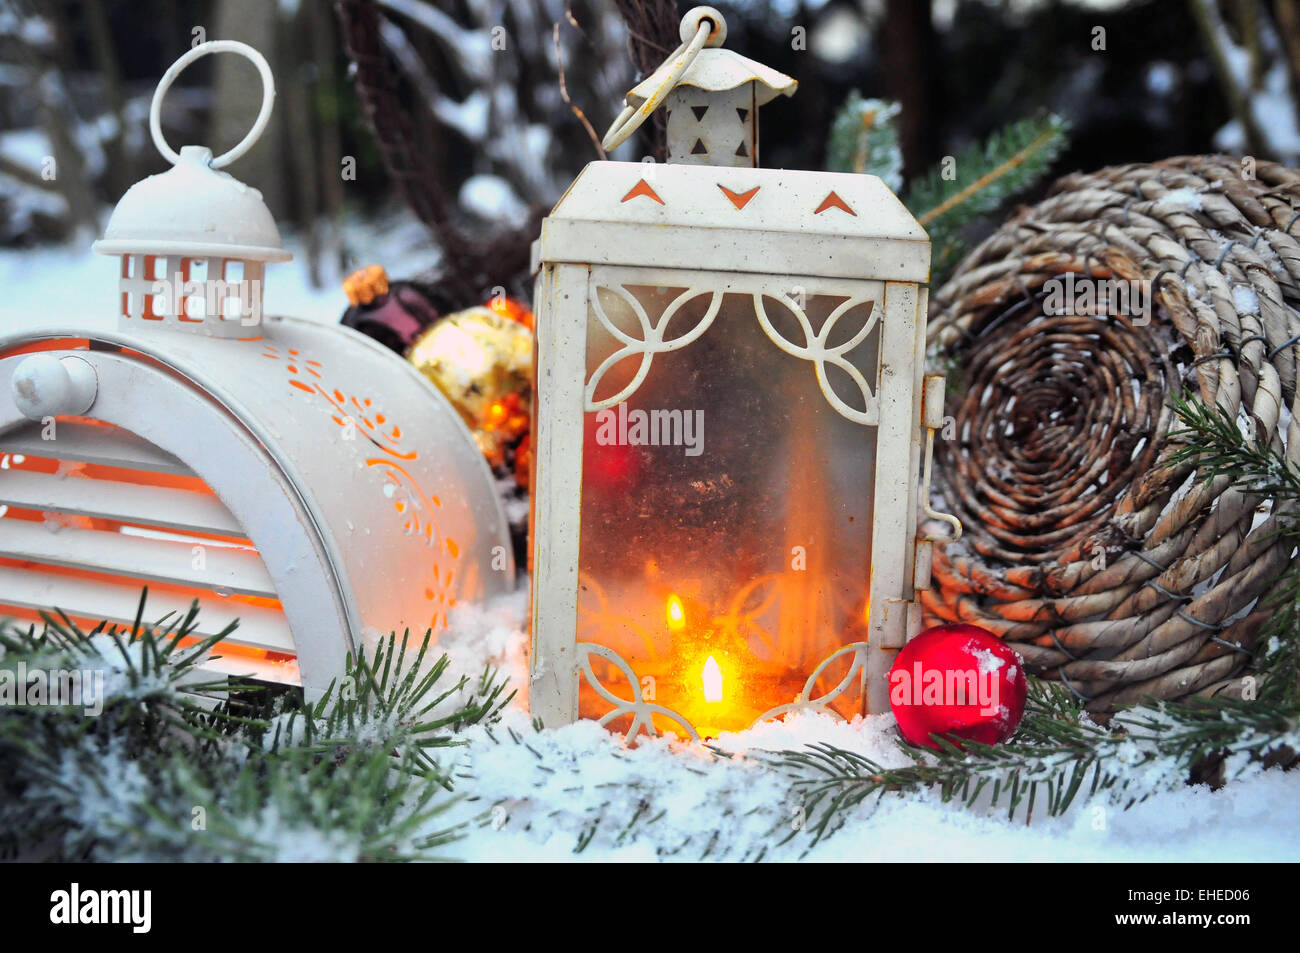 Christmas candle lantern light - Stock Image